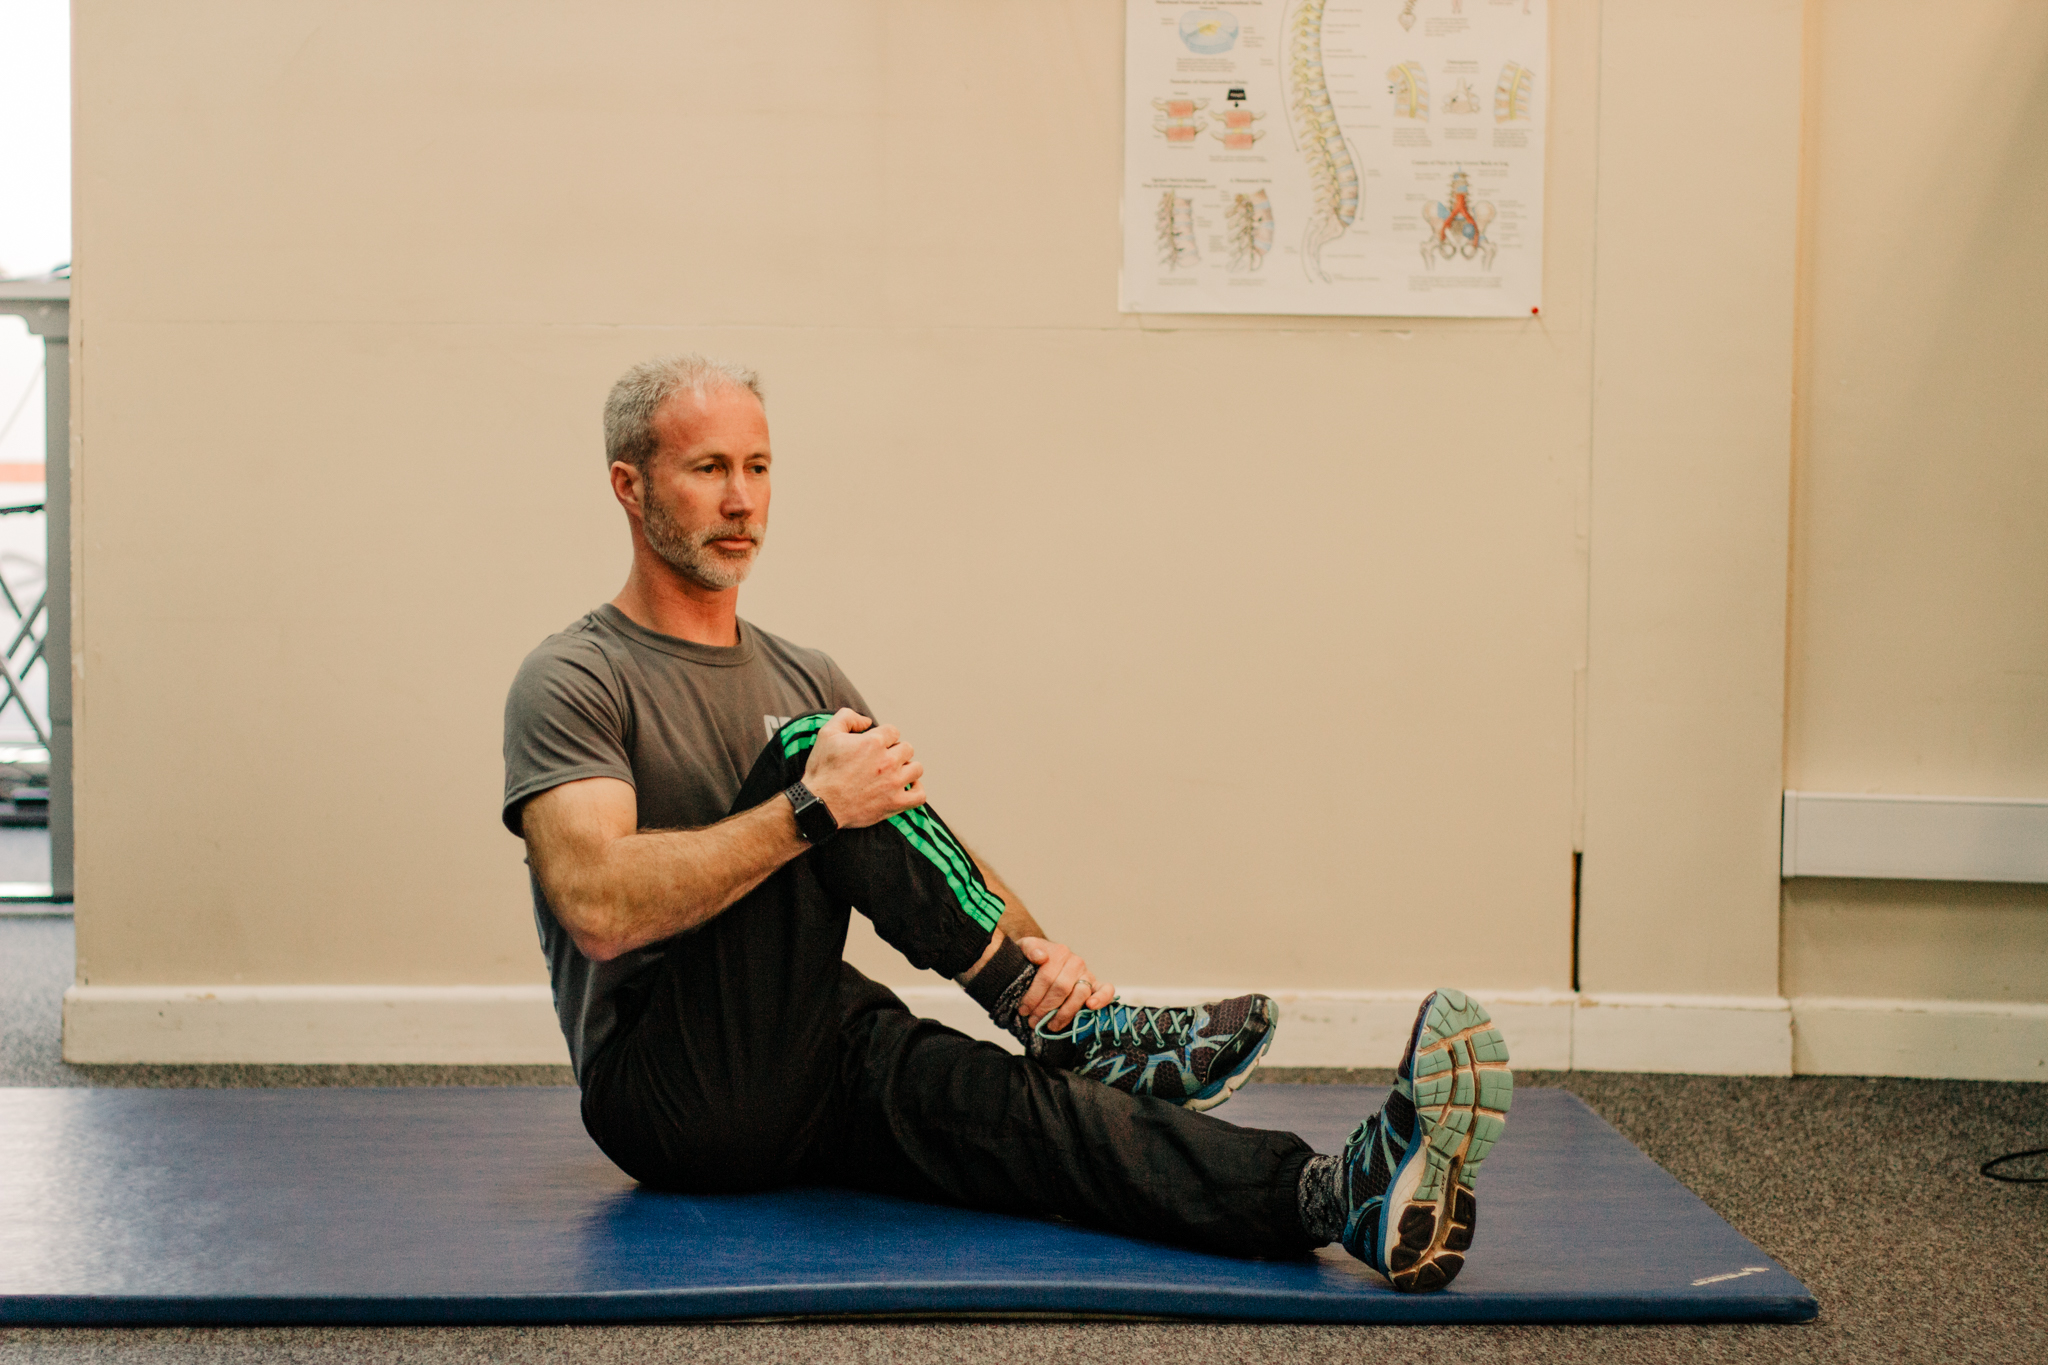 Glute Stretch   Sit with your back straight and cross one leg over the other. Use your arms to pull your knee up towards your chest and your other hand to angle your leg until you feel the stretch in your buttock.